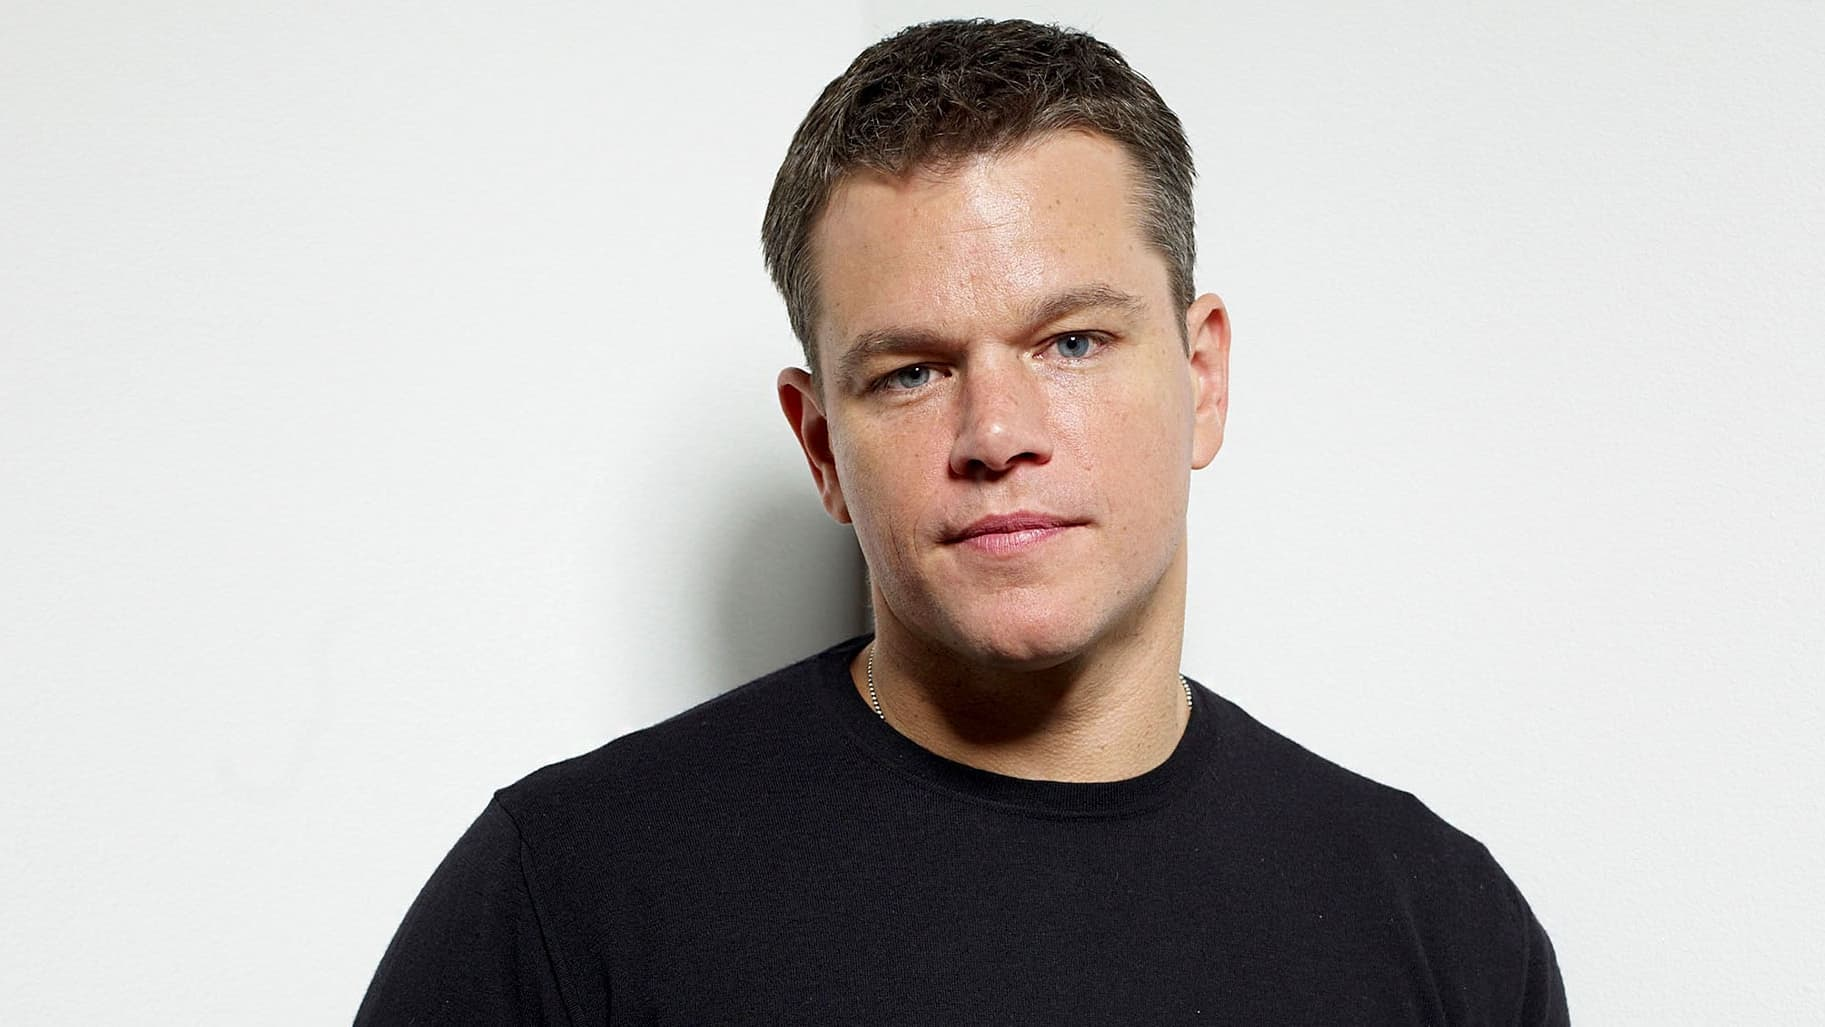 20 matt damon hd wallpapers free download for desktop for Matt damon young